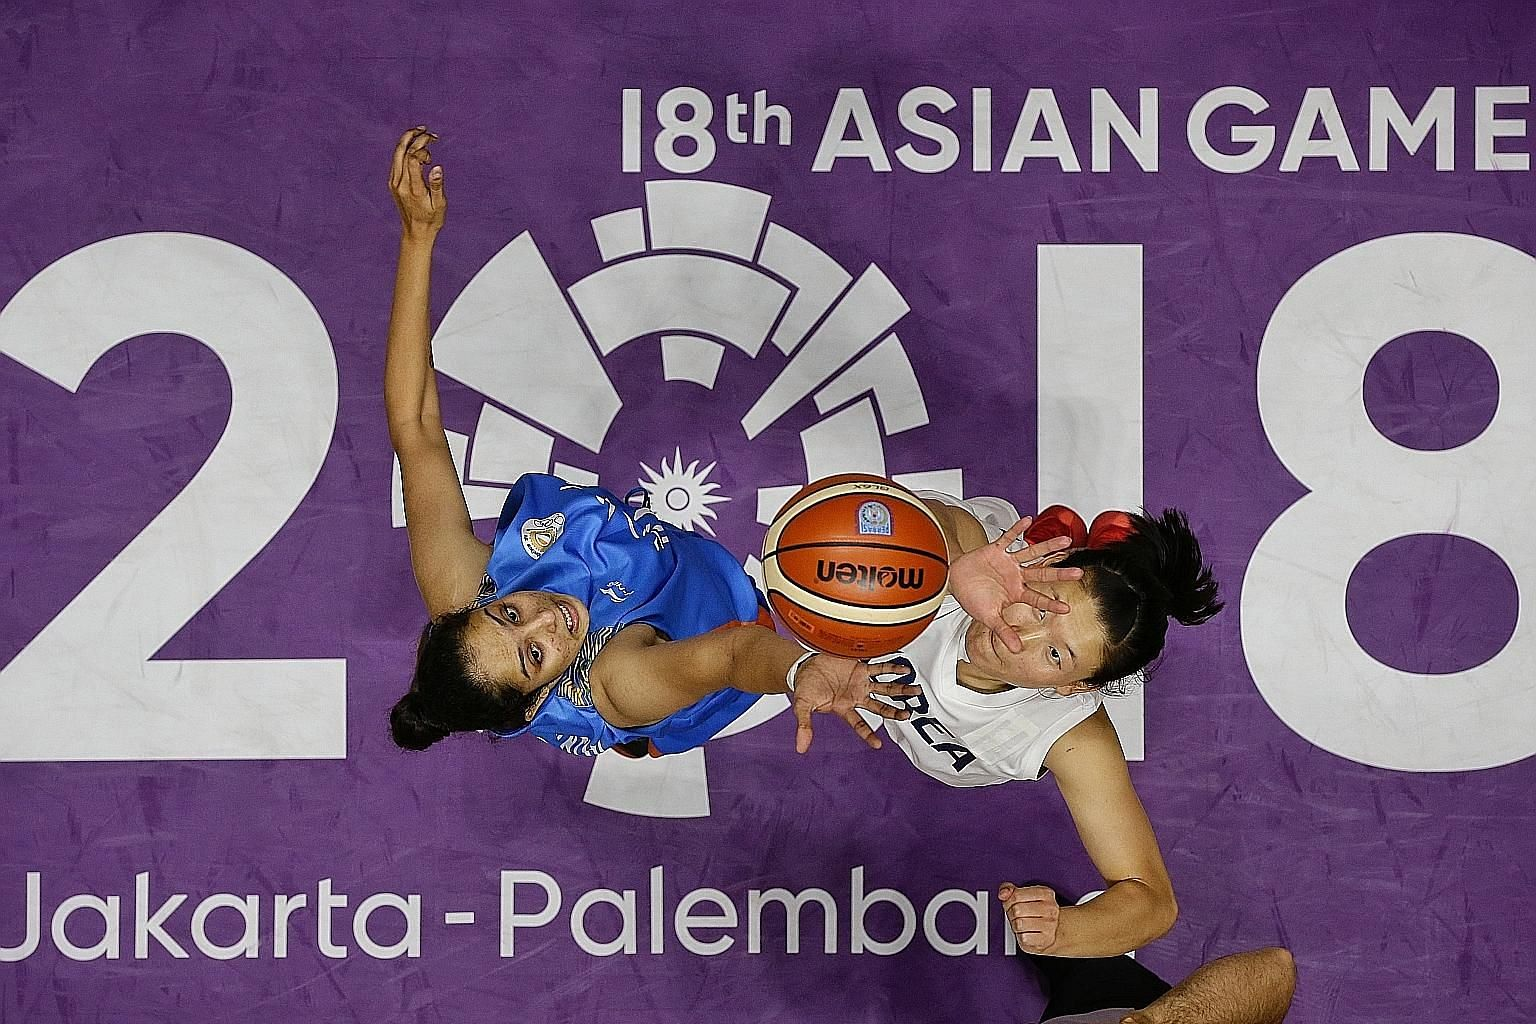 India's Rajapriyadharshini Rajaganapathi and Unified Korea's Ro Suk Yong vying for the ball in a women's basketball match at the Asian Games.